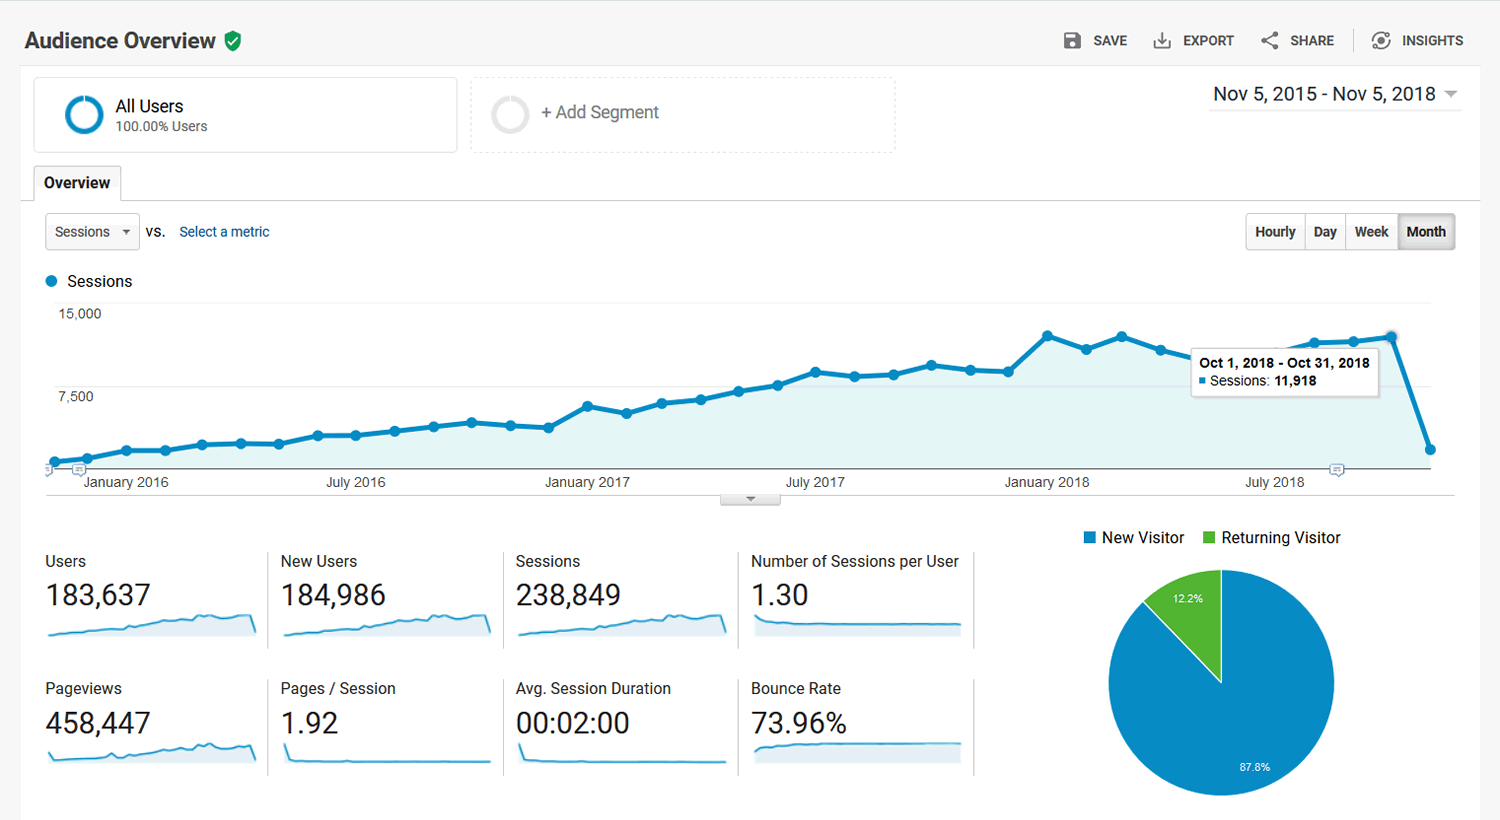 Google Analytics - Audience Overview - 2015-11-05 through 2018-11-05